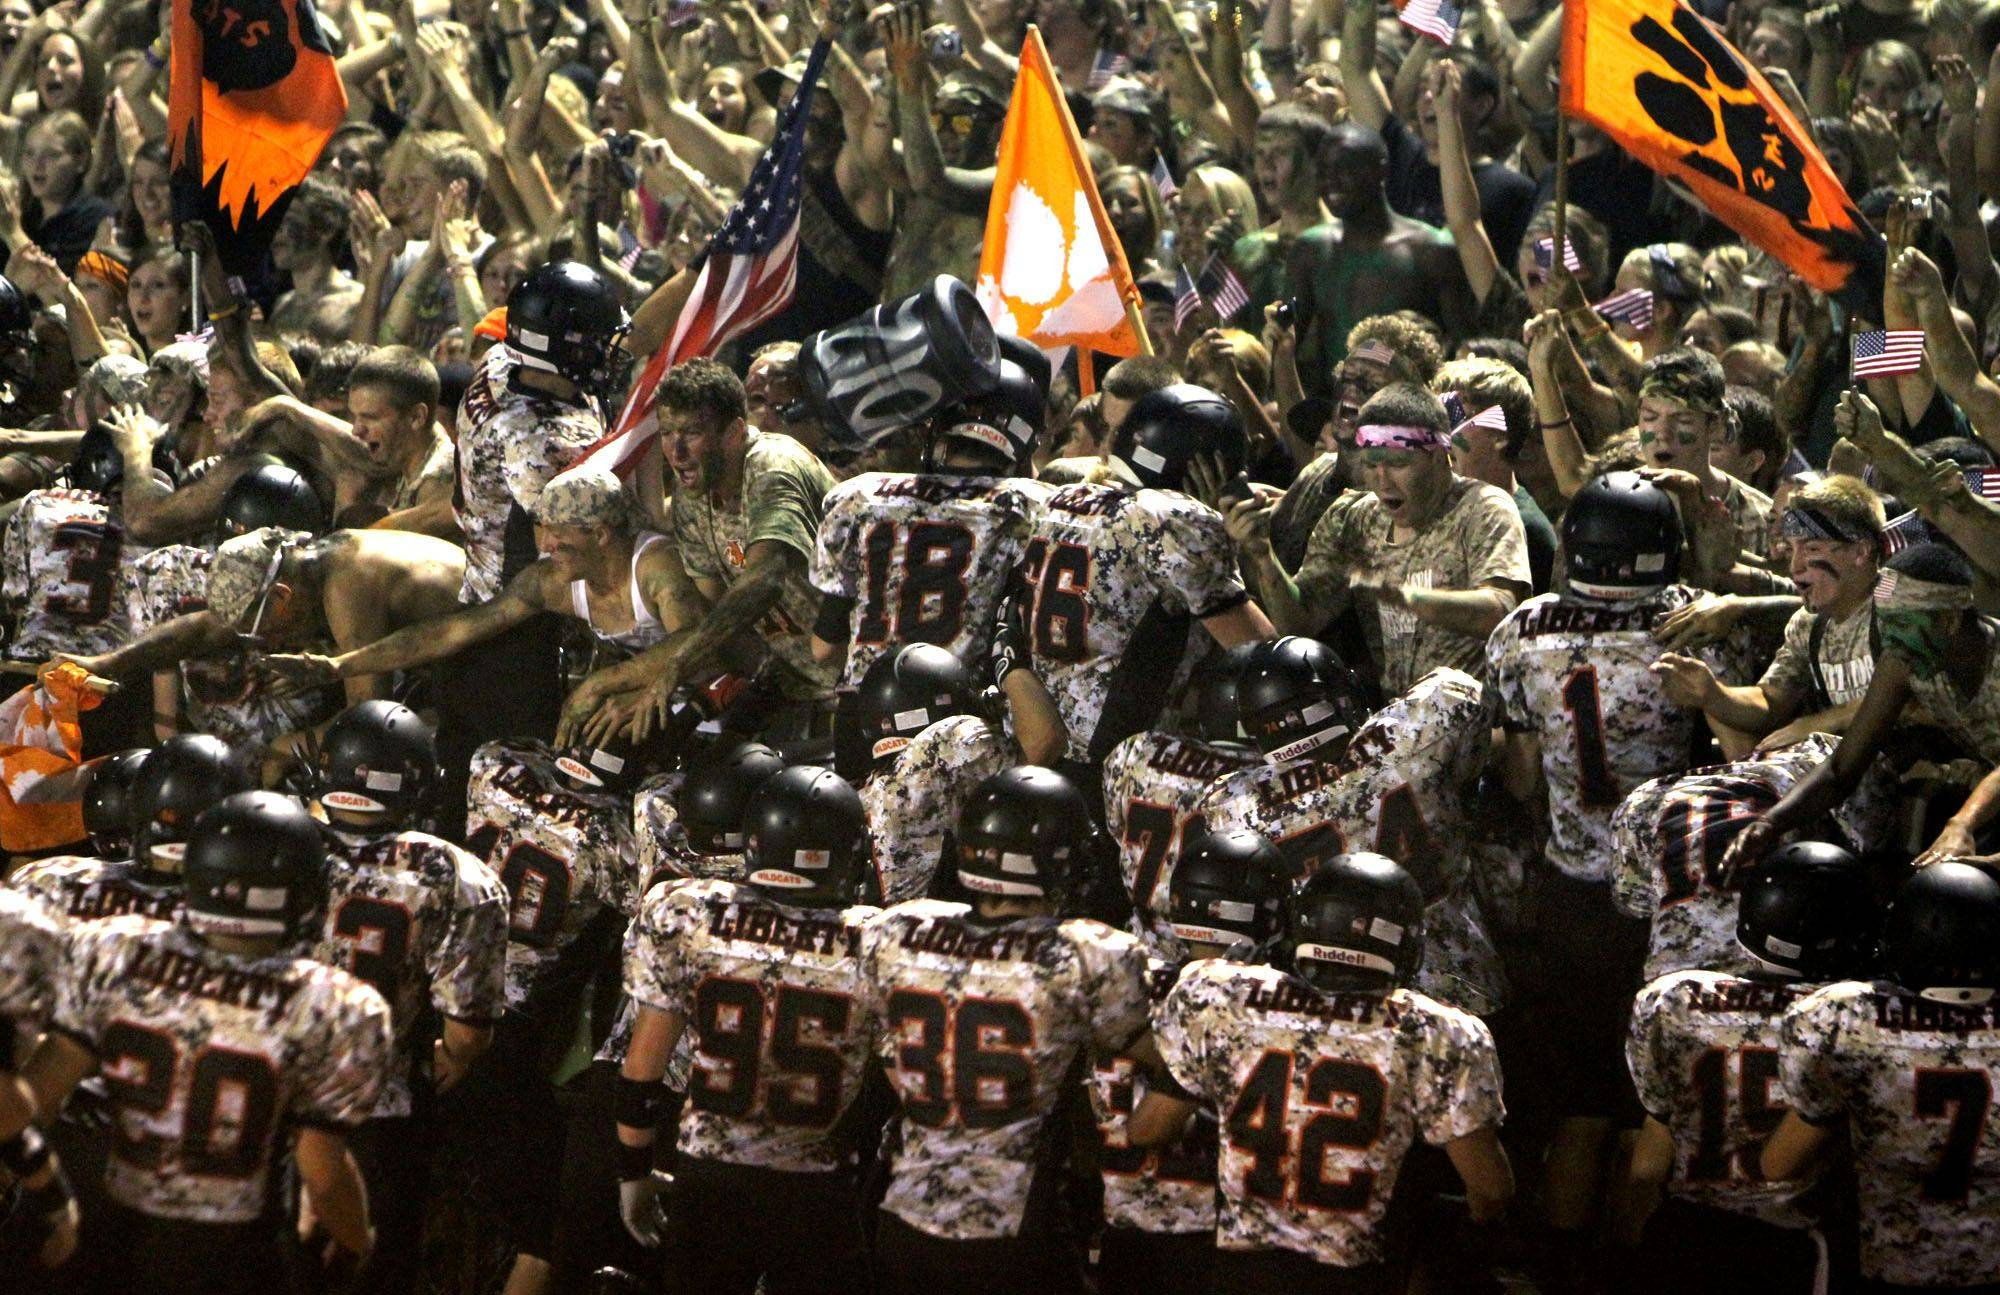 Libertyville players, wearing camouflage uniforms, leap into the stands after taking the field on military appreciation night Friday.